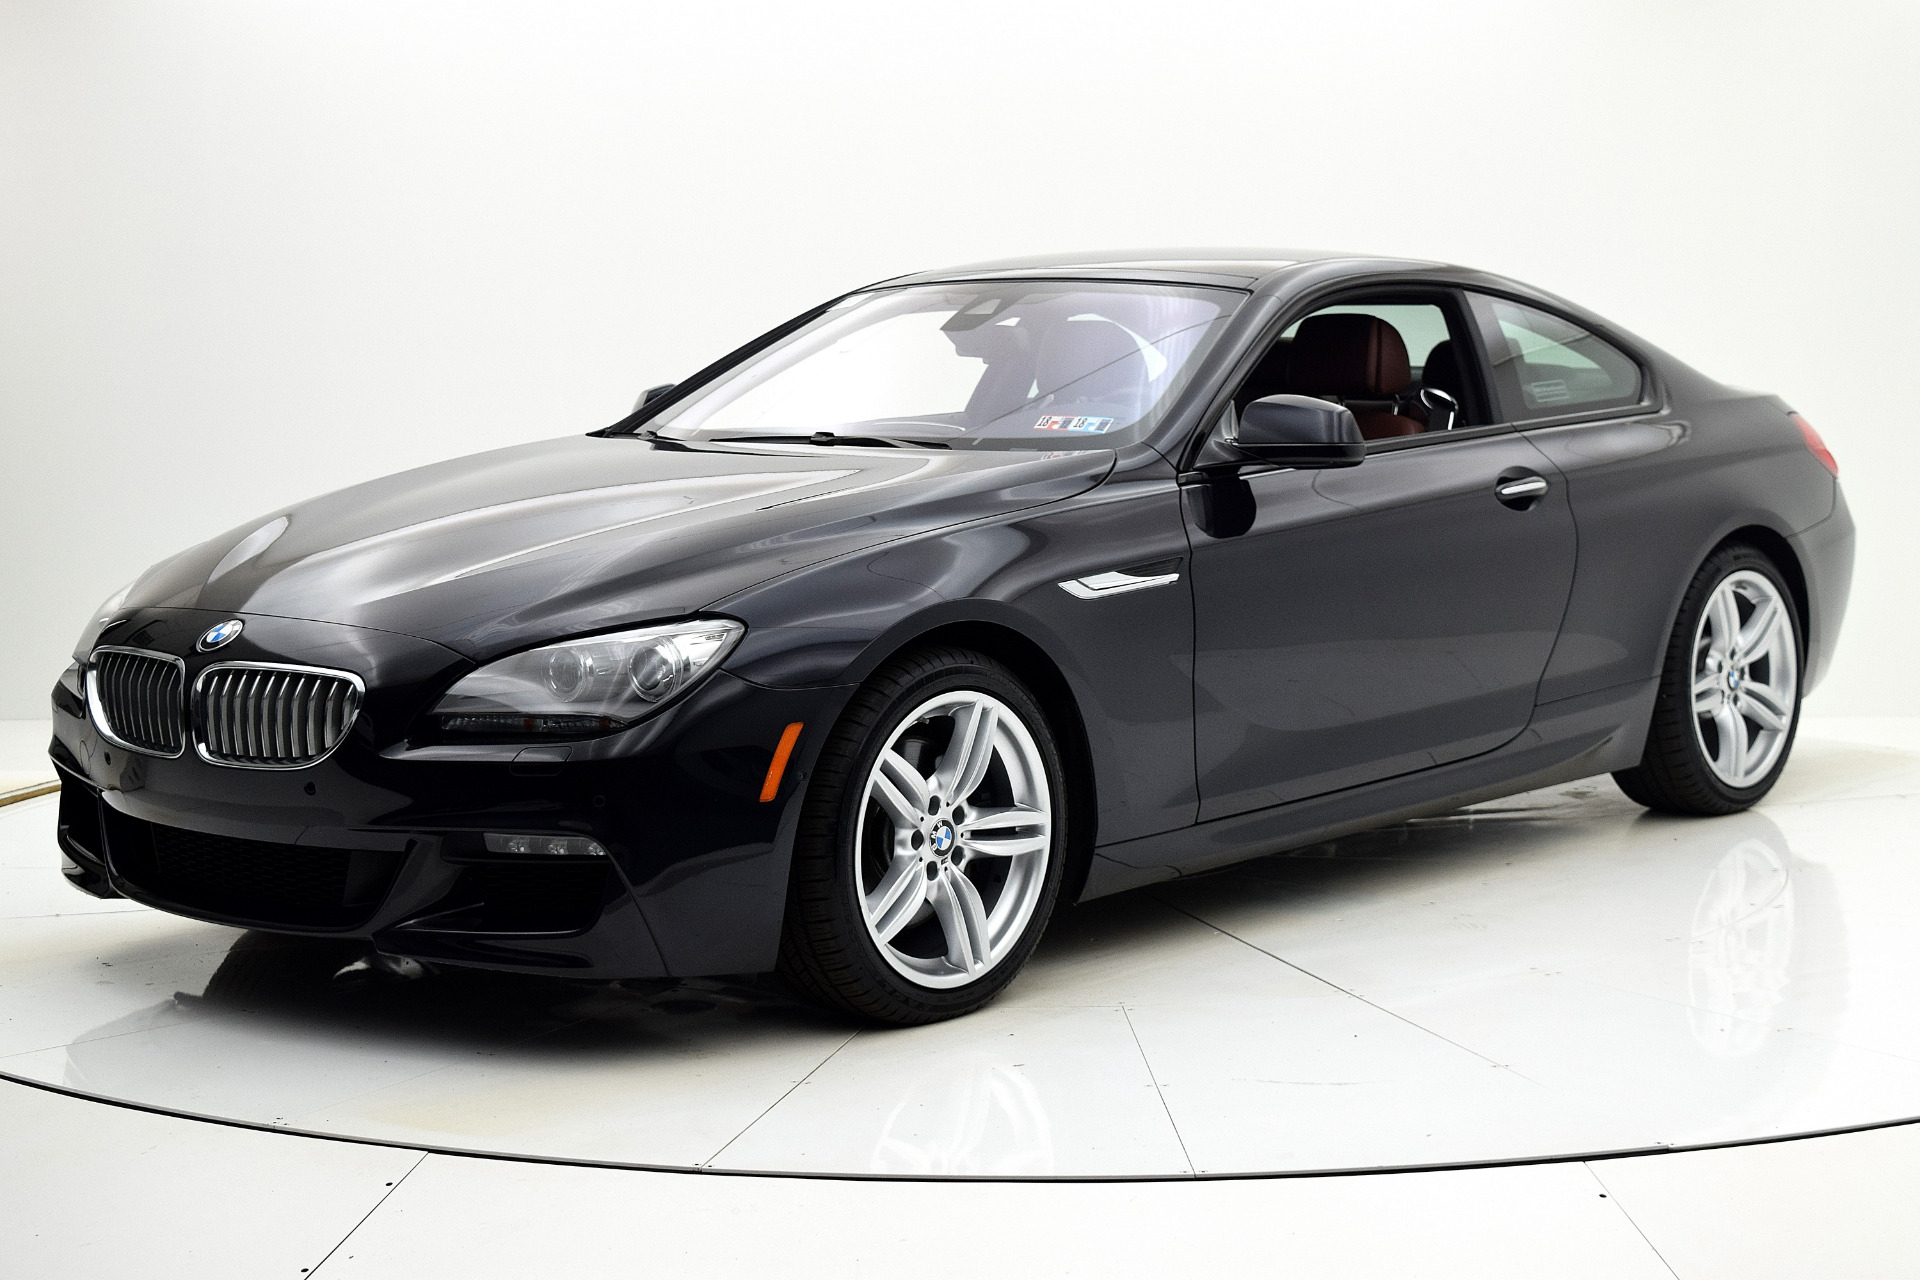 BMW 6 Series 2013 For Sale $32880 Stock Number 17BE118CJI